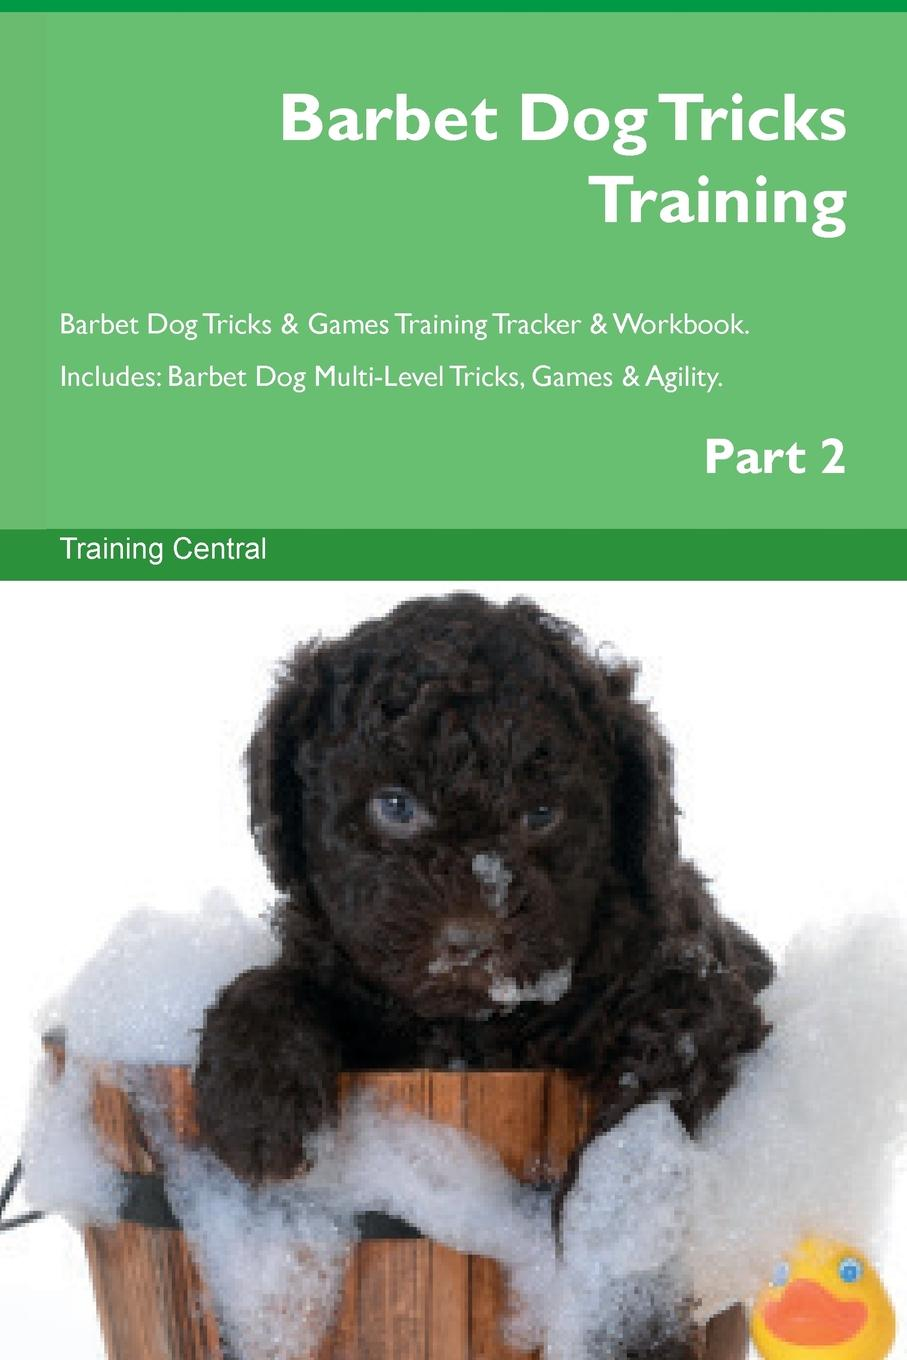 Training Central Barbet Dog Tricks Training Barbet Dog Tricks . Games Training Tracker . Workbook. Includes. Barbet Dog Multi-Level Tricks, Games . Agility. Part 2 this book loves you